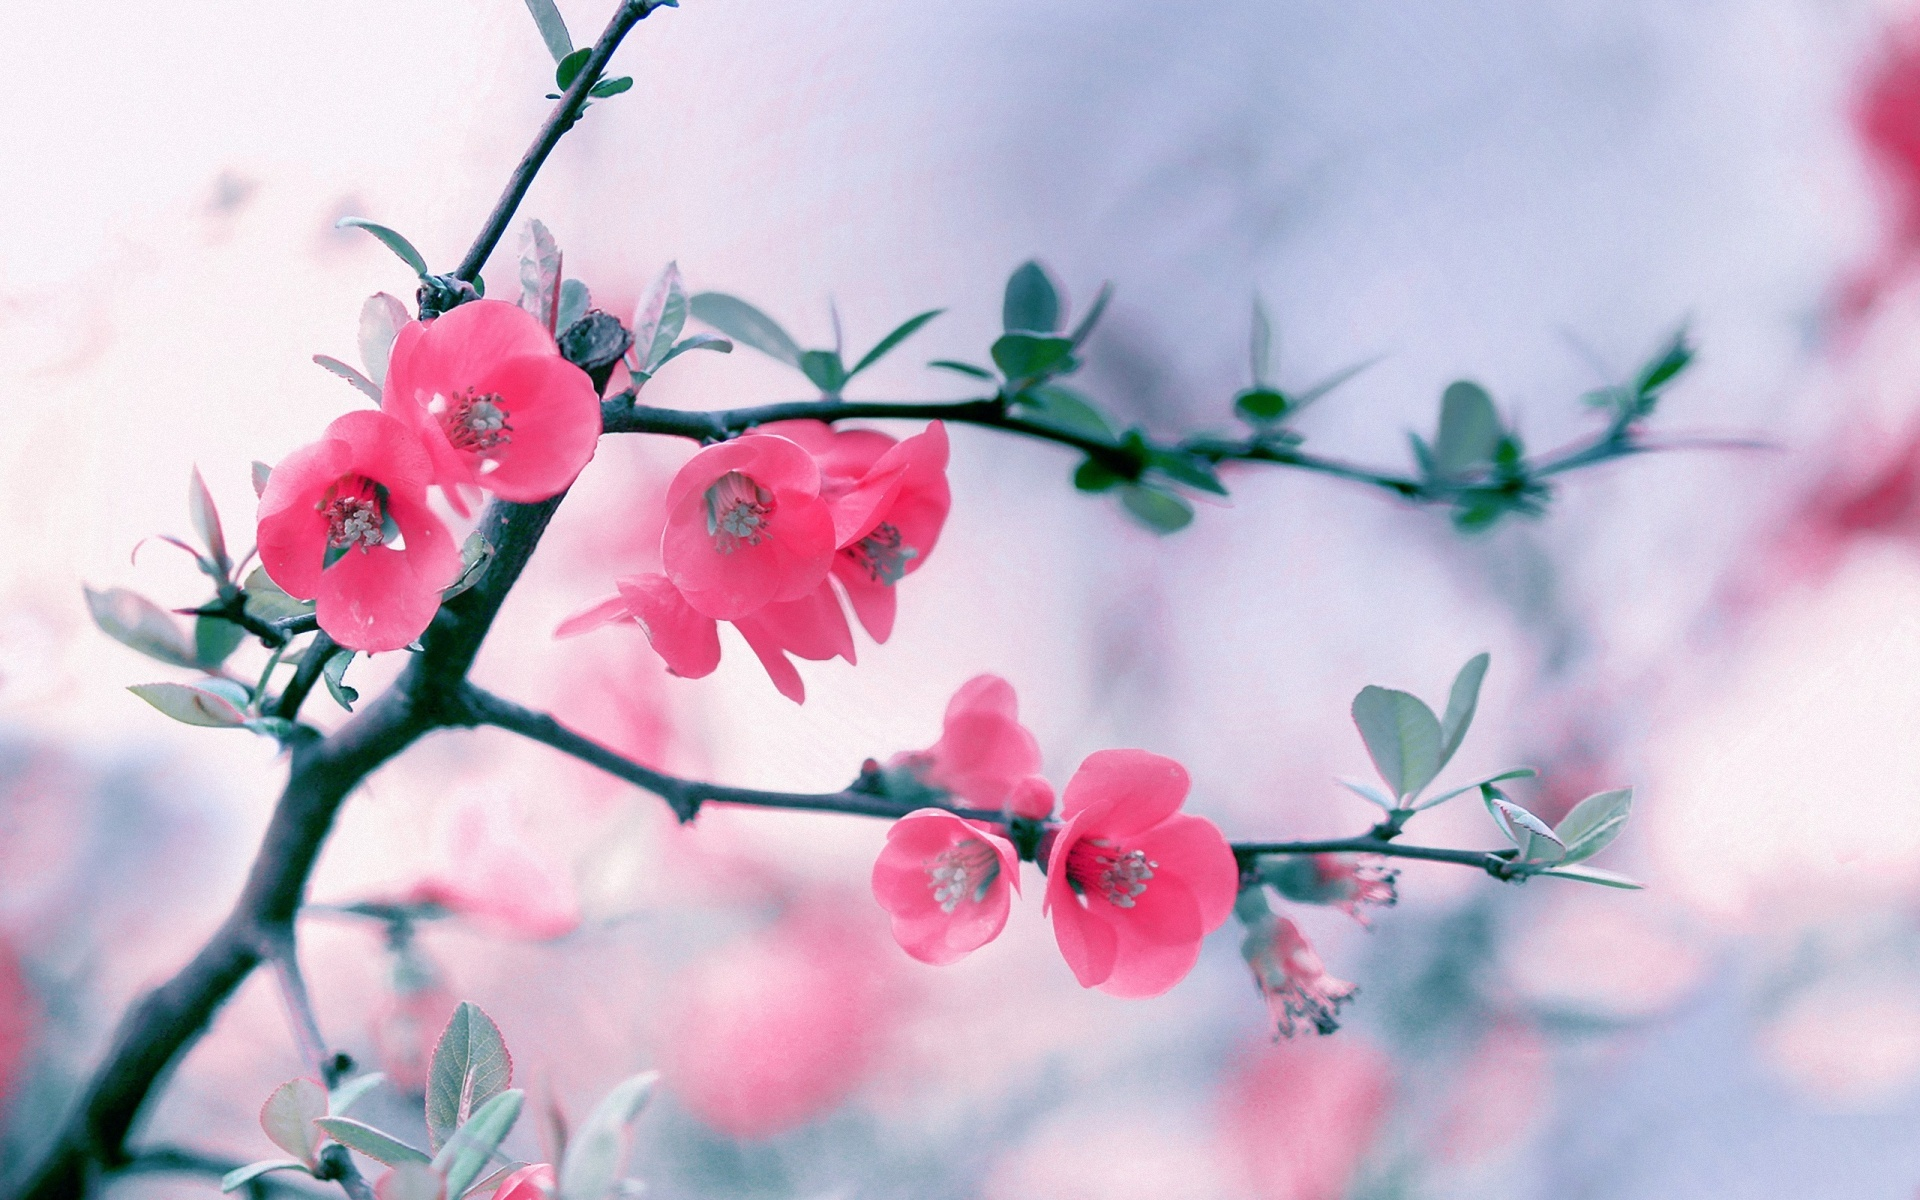 85 Wallpaper Flower Backgrounds For Mobile And Desktop